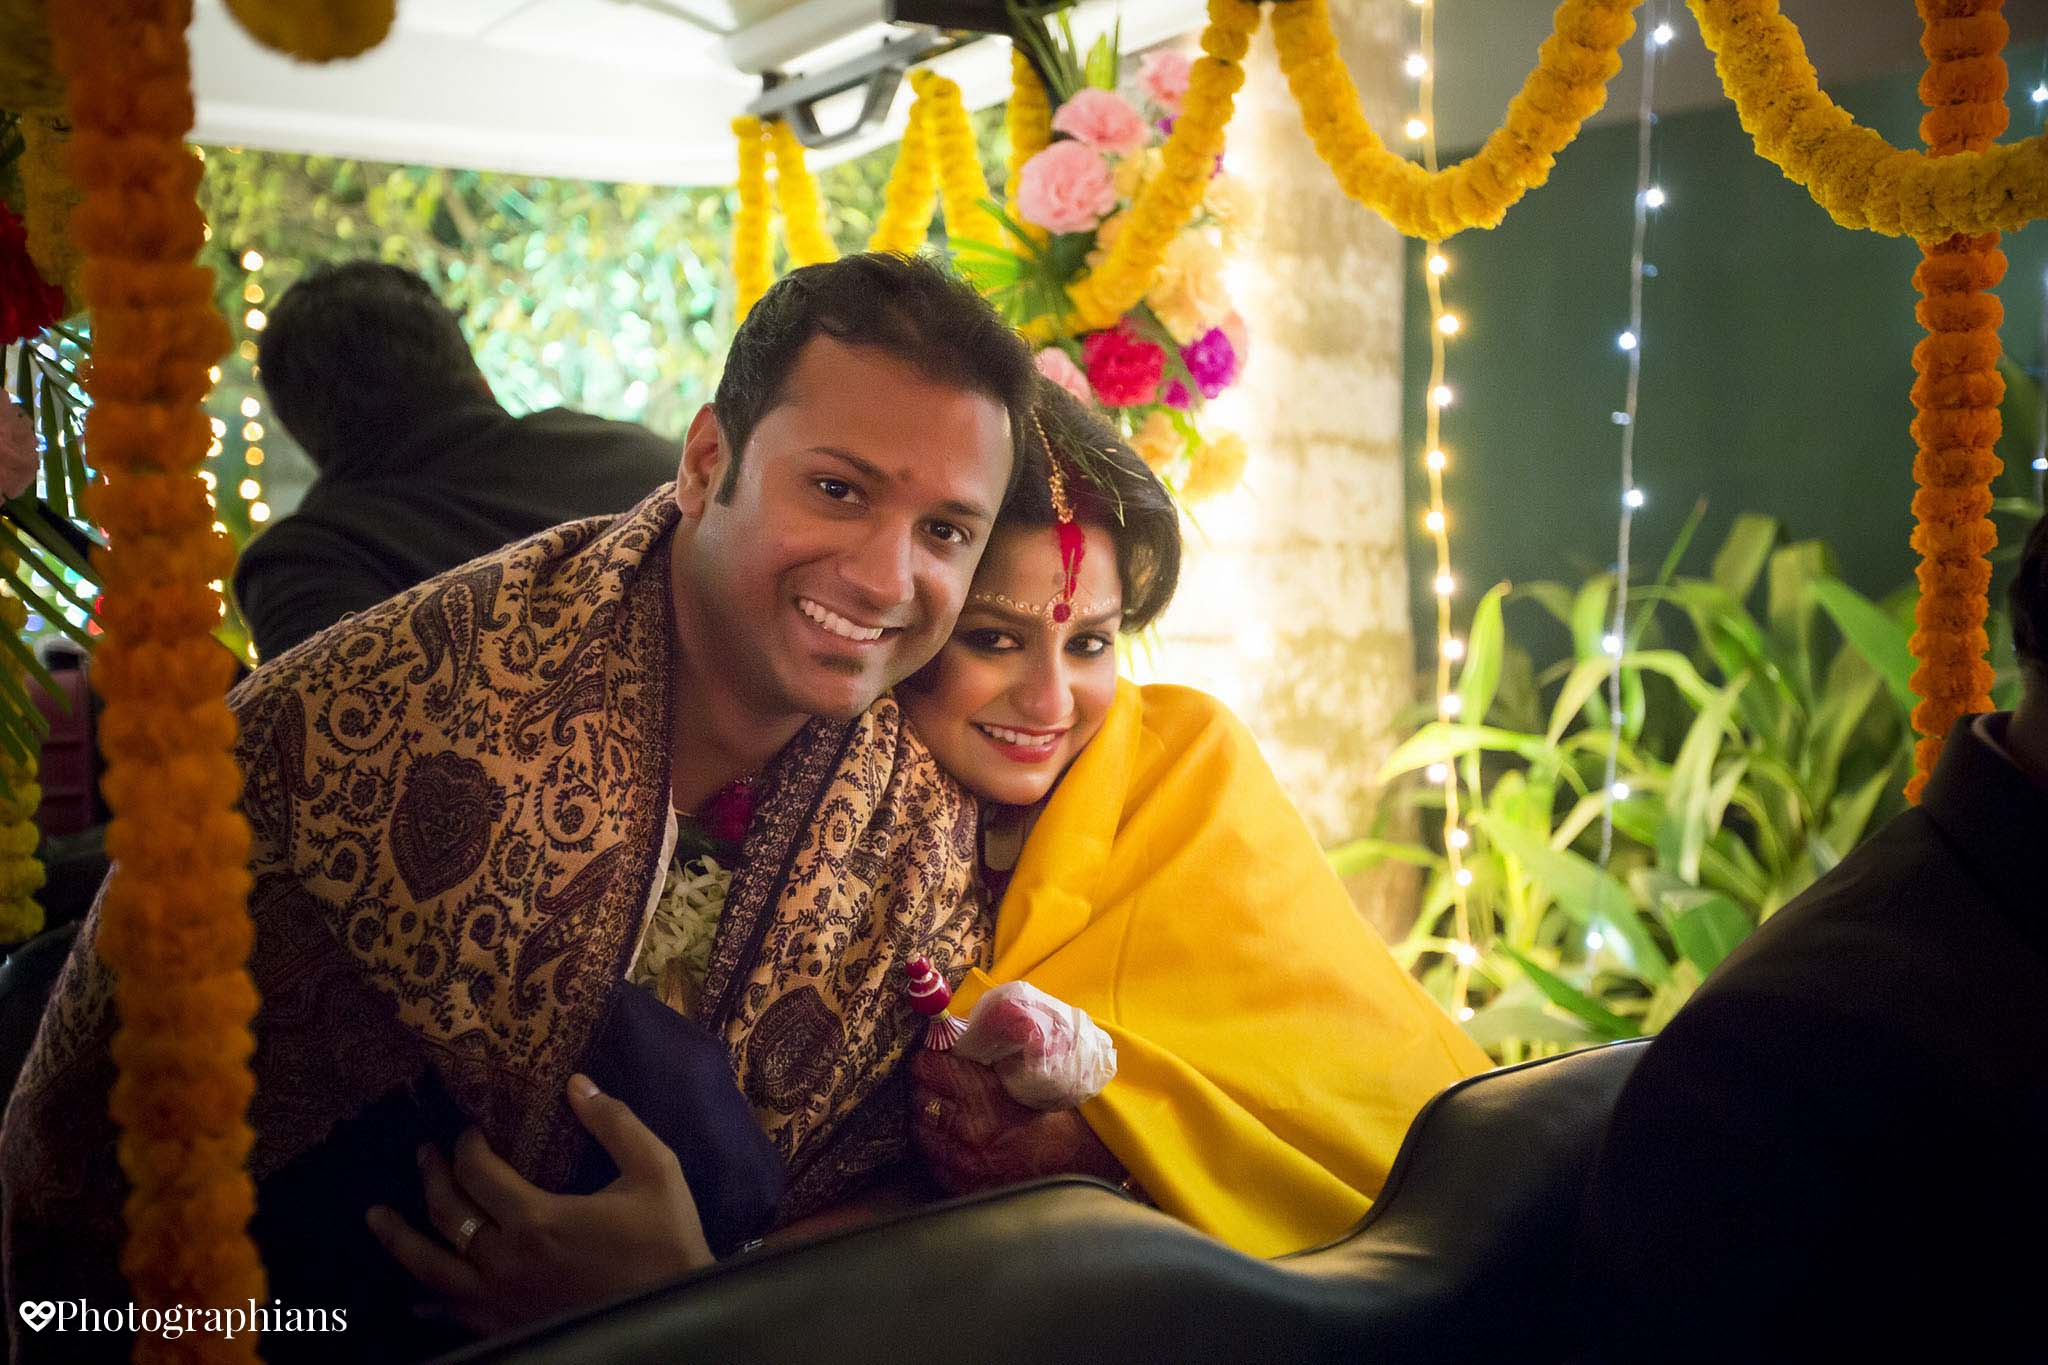 Photographians_Indian_Destination_Wedding_245